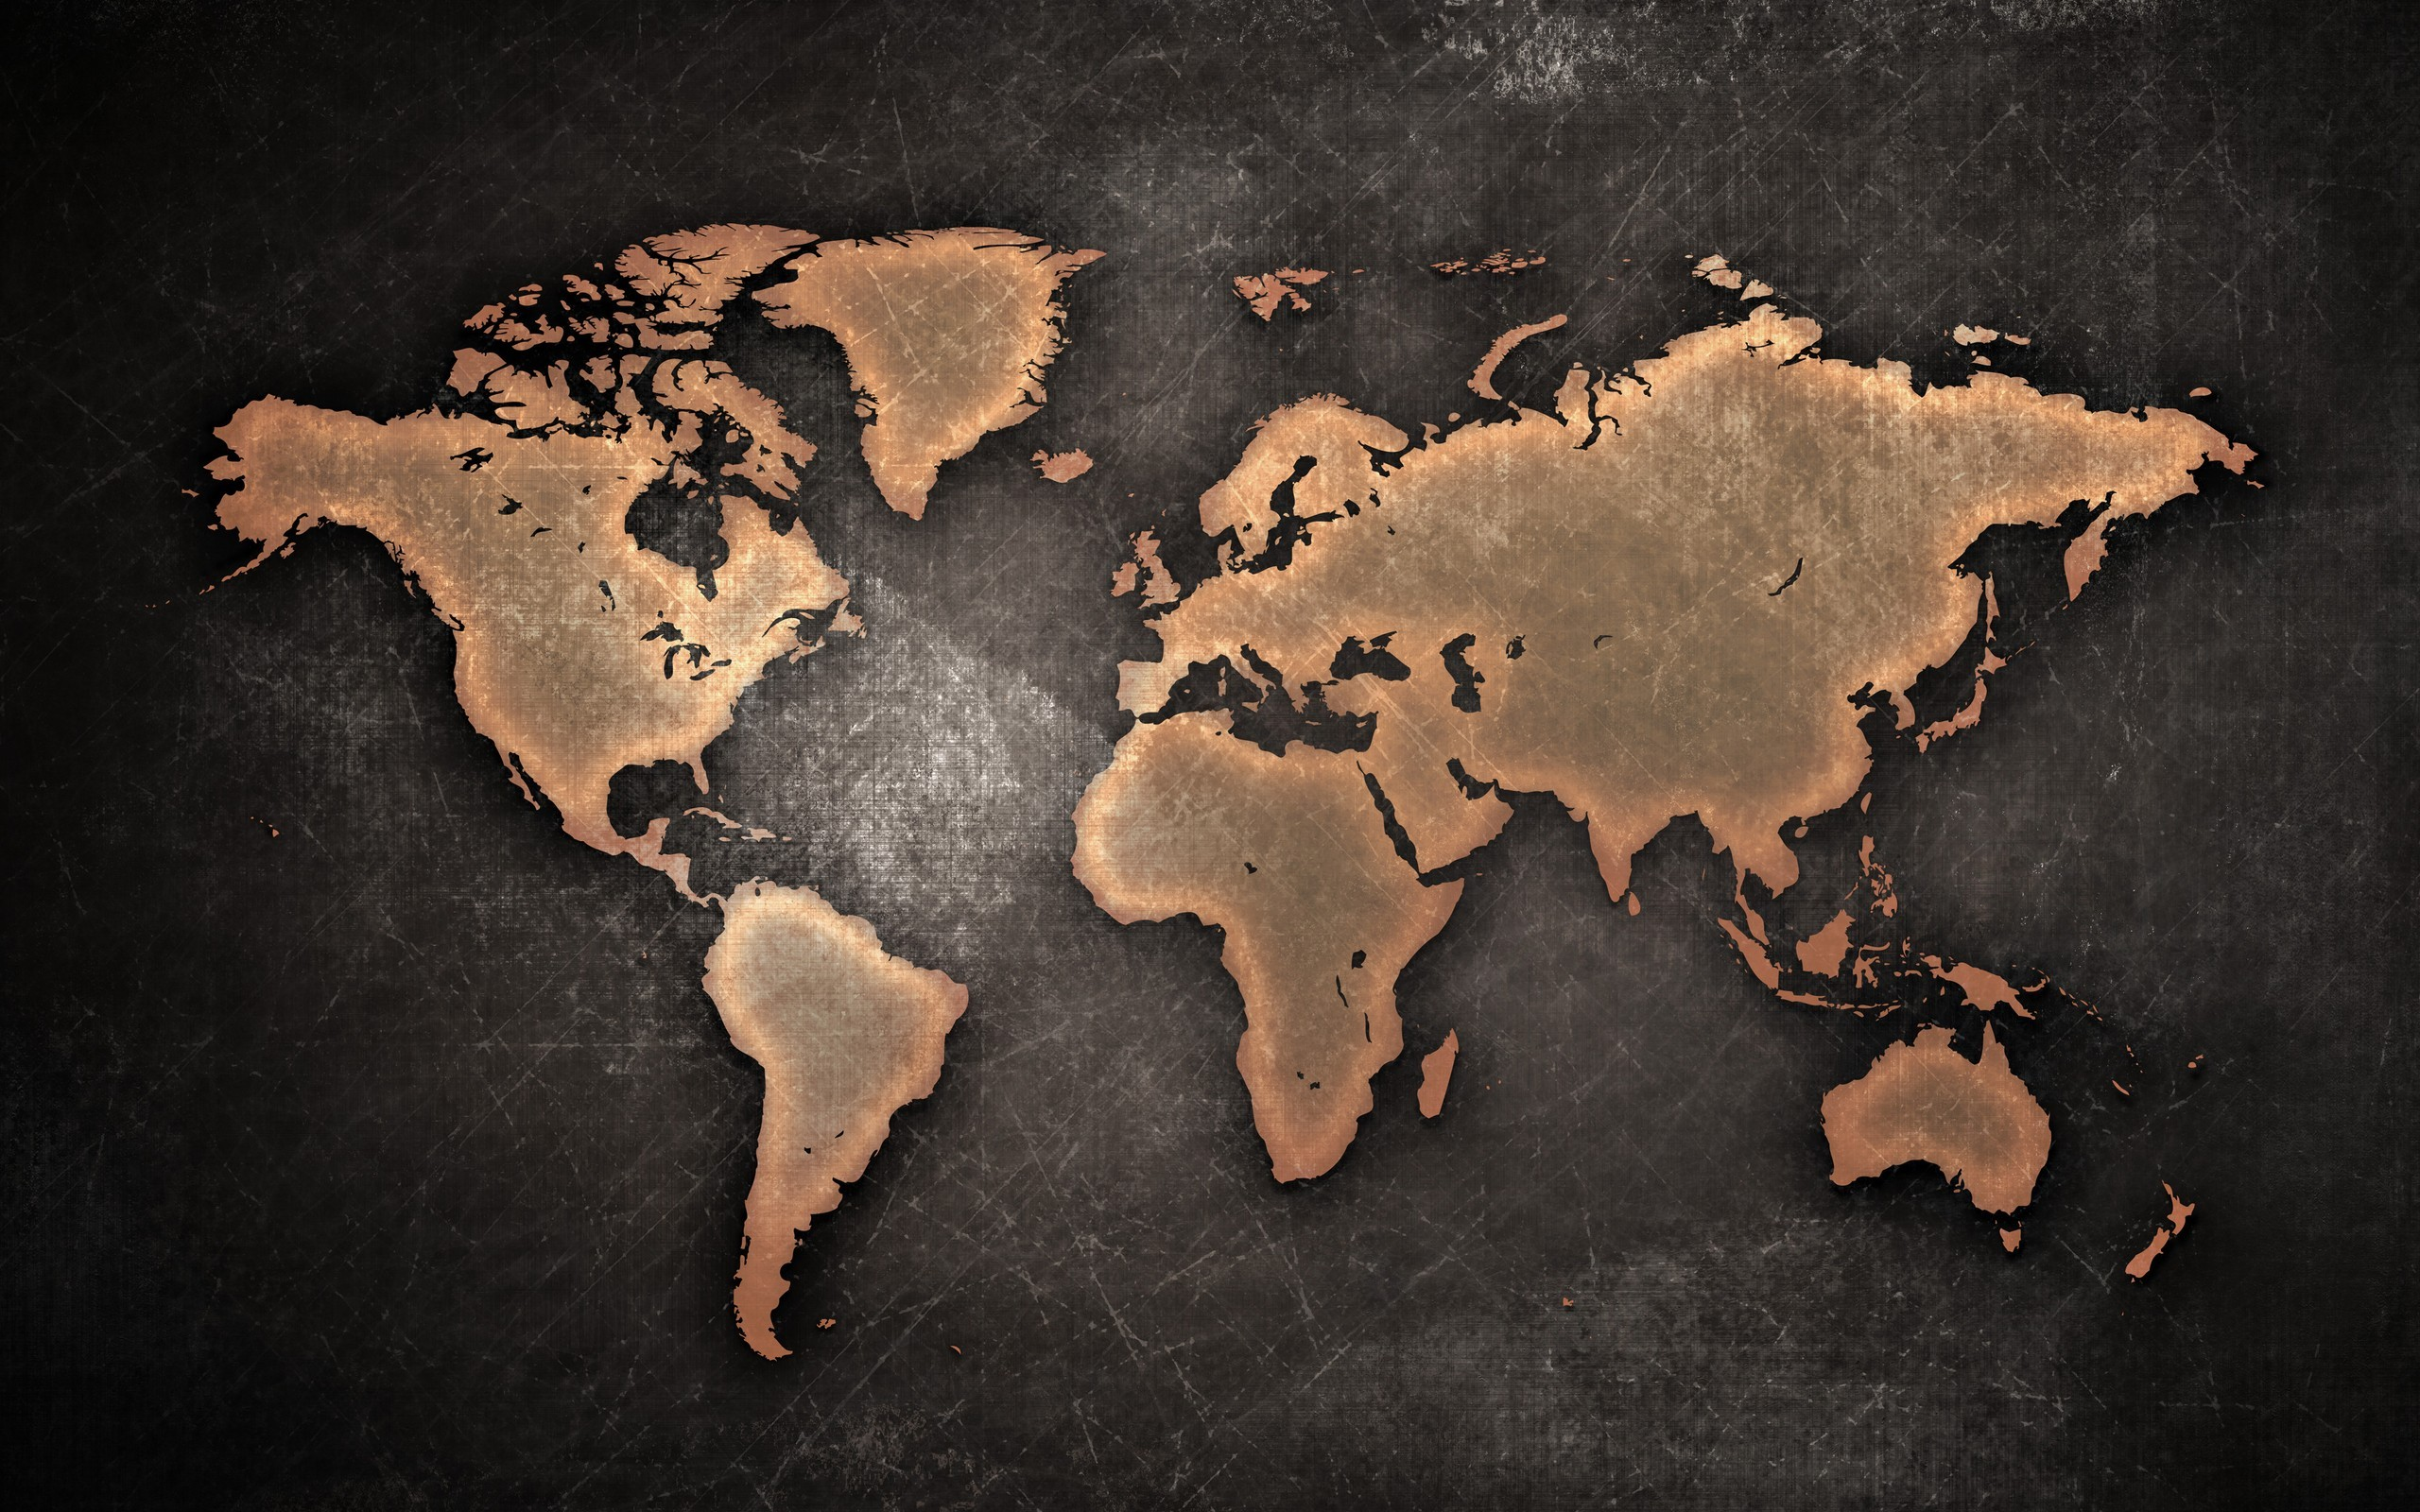 grunge-world-map-digital-art-hd-wallpaper-2560x1600-4196 ...